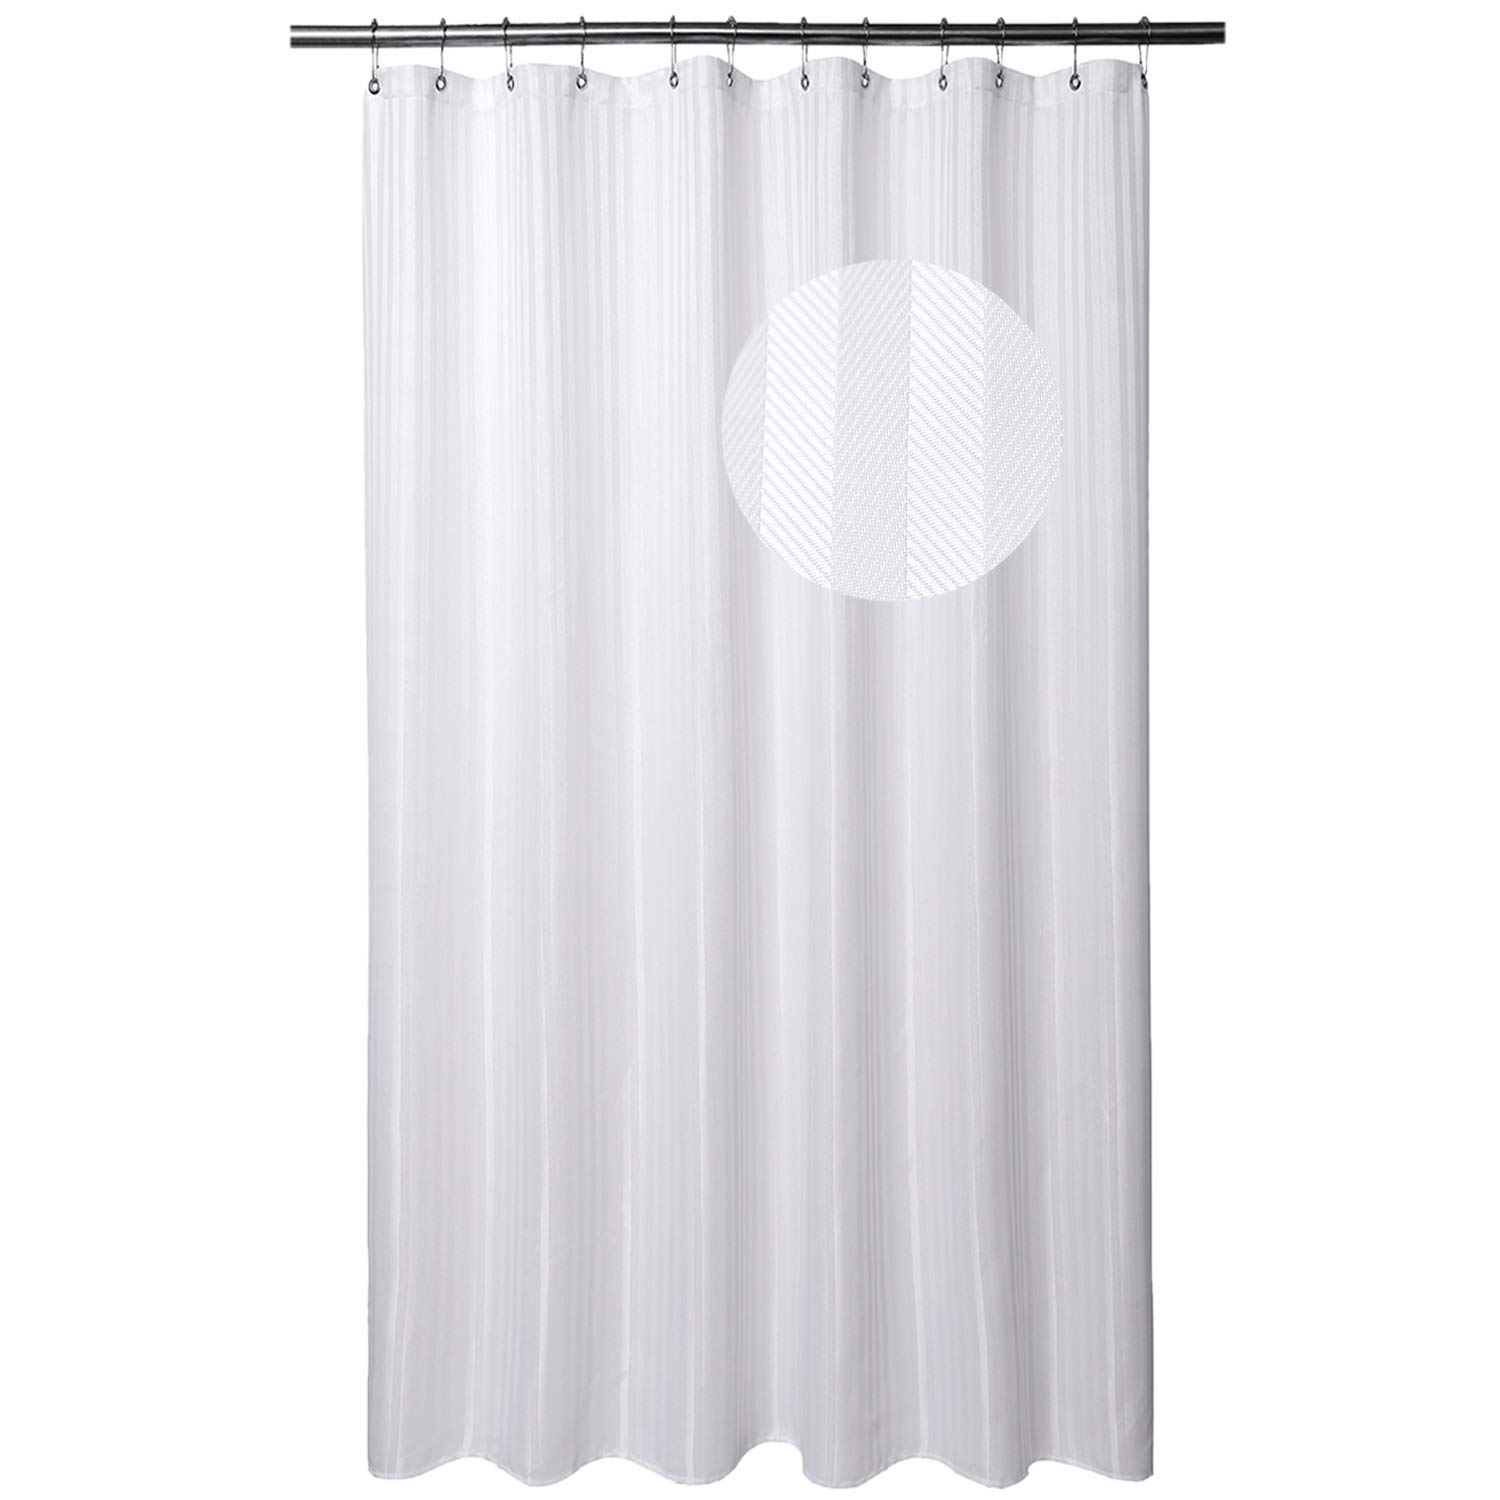 shower curtain long 84 inches